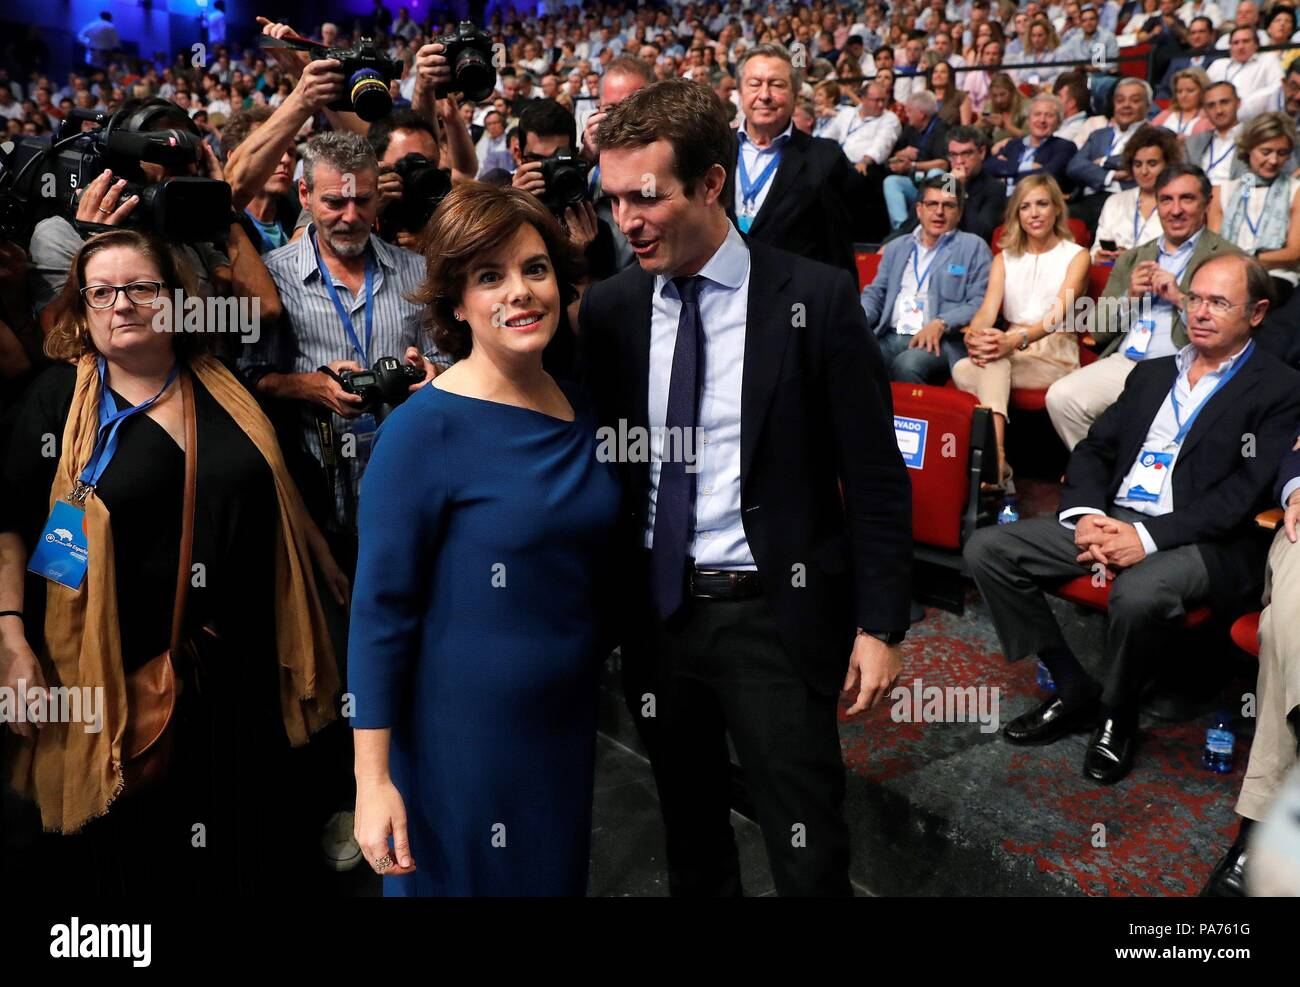 Madrid spain 21 july 2018 candidates to lead the spanish candidates to lead the spanish conservative peoples party pp pablo casado r and soraya saenz de santamaria l greet each other during the peoples m4hsunfo